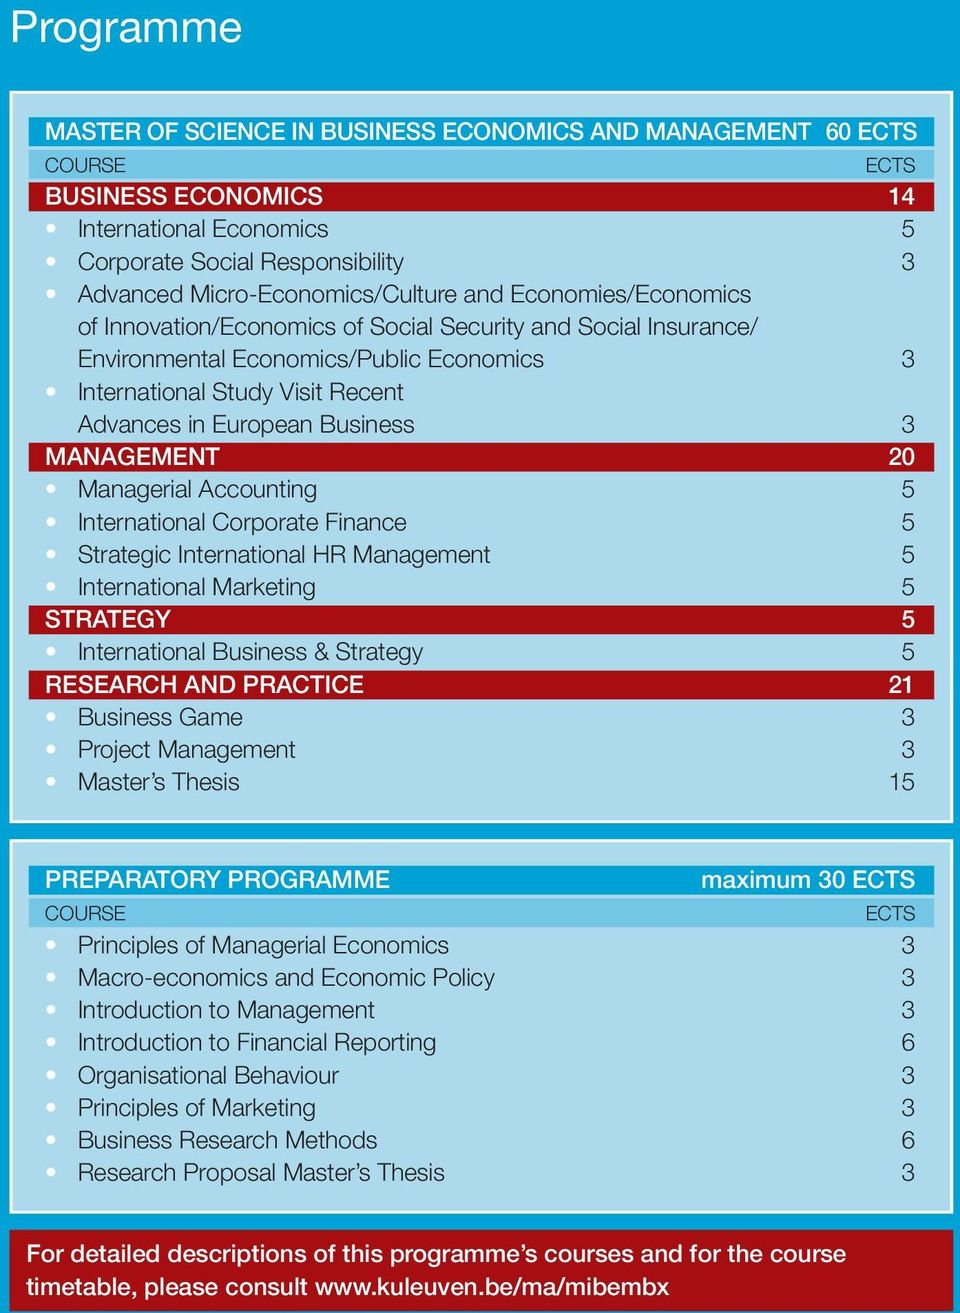 MANAGEMENT 20 Managerial Accounting 5 International Corporate Finance 5 Strategic International HR Management 5 International Marketing 5 STRATEGY 5 International Business & Strategy 5 RESEARCH AND